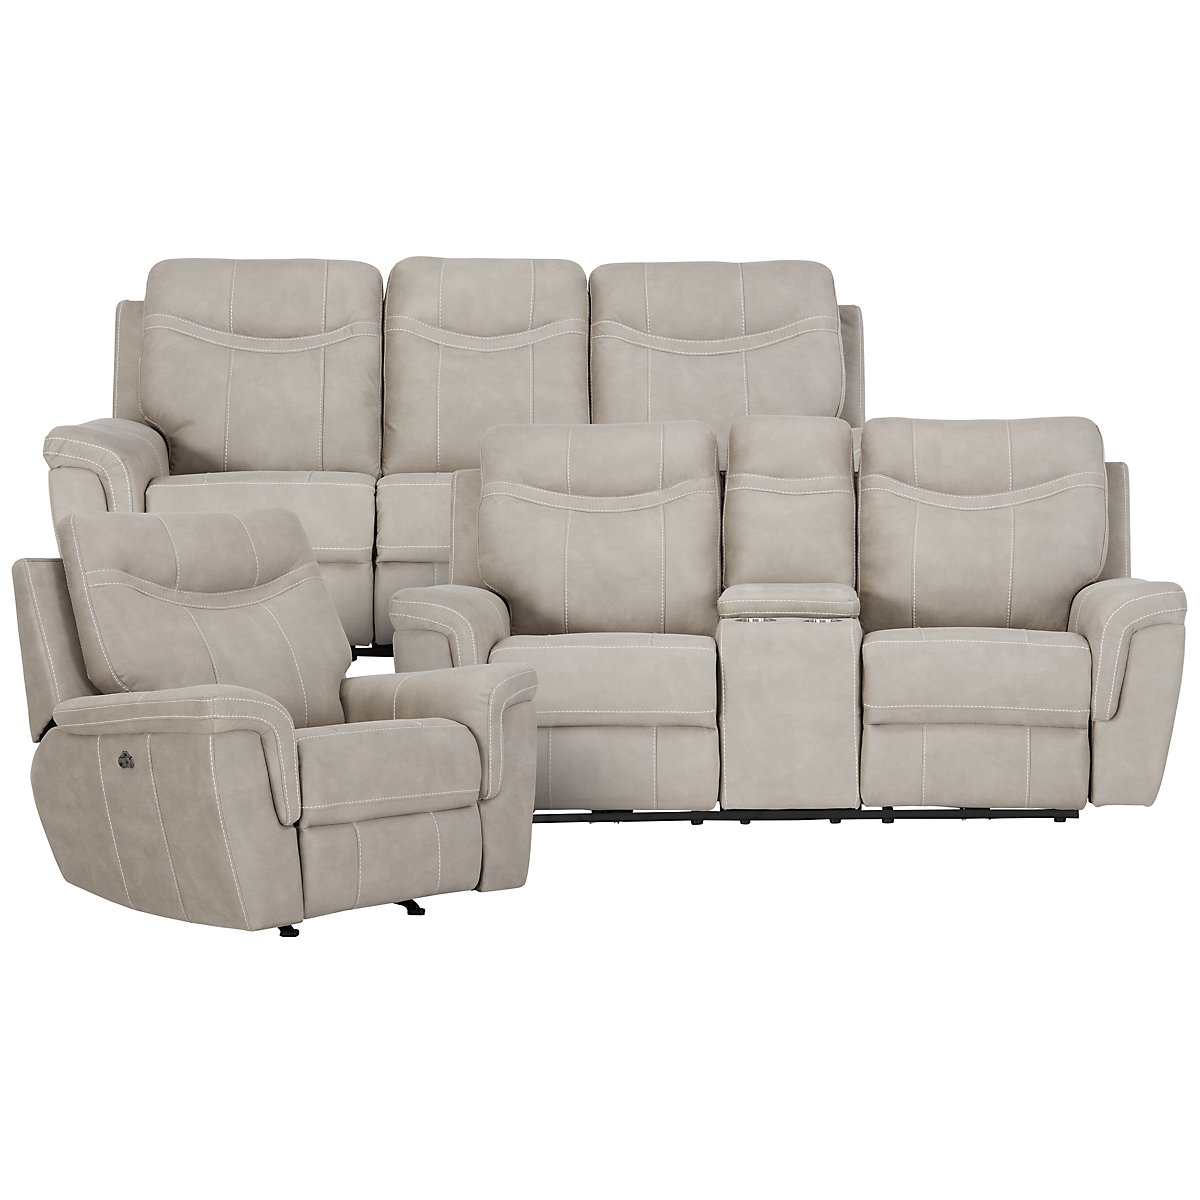 Boardwalk Pewter Microfiber Power Reclining Living Room